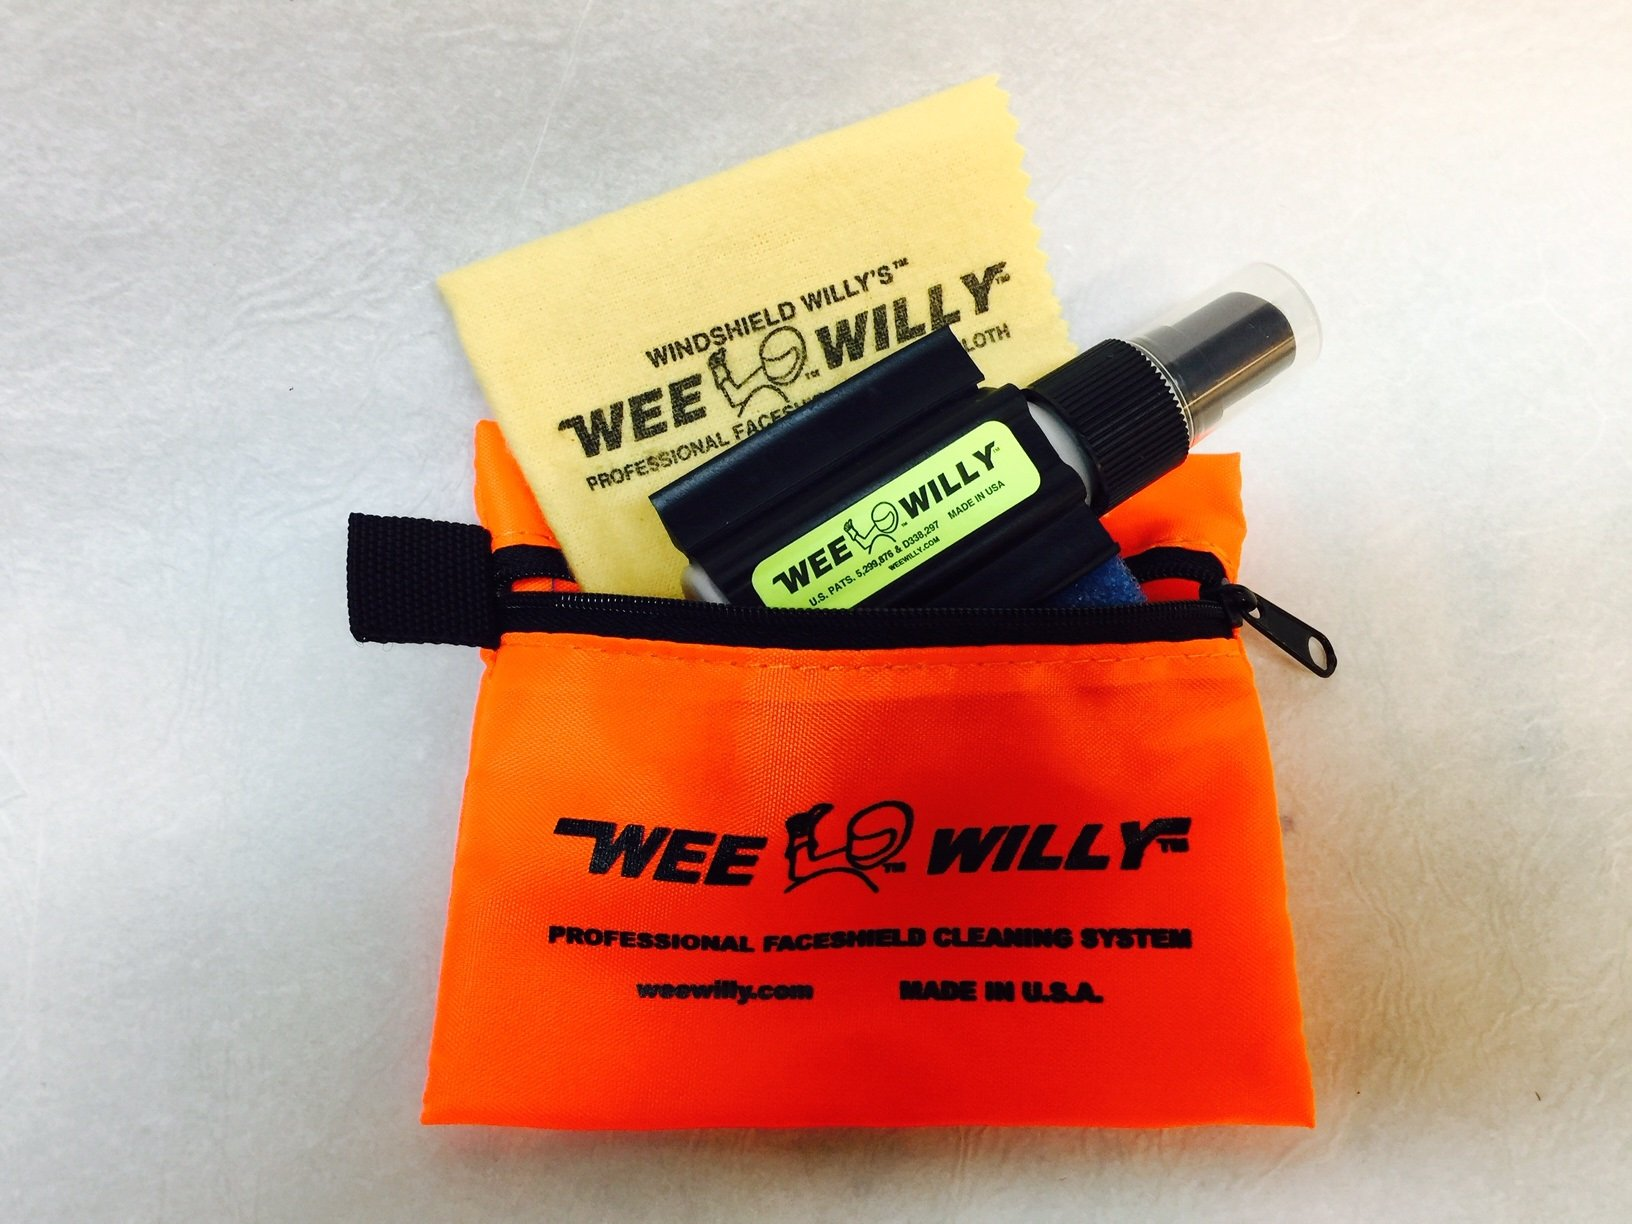 Wee Willy Professional Faceshield Cleaning System